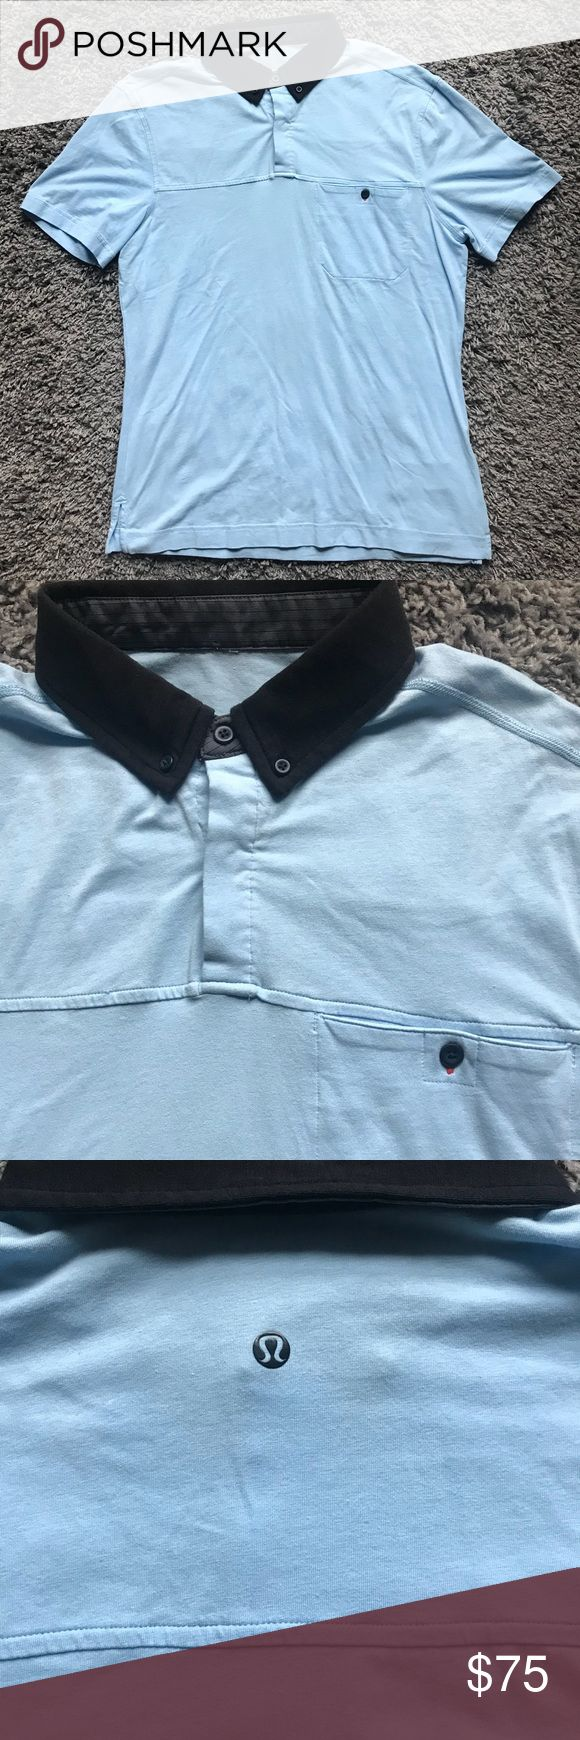 "Lululemon mens 2 Pocket Polo Shirt Gym Running M Size: Medium  In great condition, ready to wear form!  Has 2 button pockets, which isn't very common to see on lululemon shirts. Light blue color way that goes with almost anything. Black lululemon signature logo on the back of shirt which is very visible. 2 Button front. Button collar to keep collar in place.   Approximate measurements laying flat unstretched;   Pit to pit: 20.5""  Shoulder to shoulder: 18""  Length of back not including…"